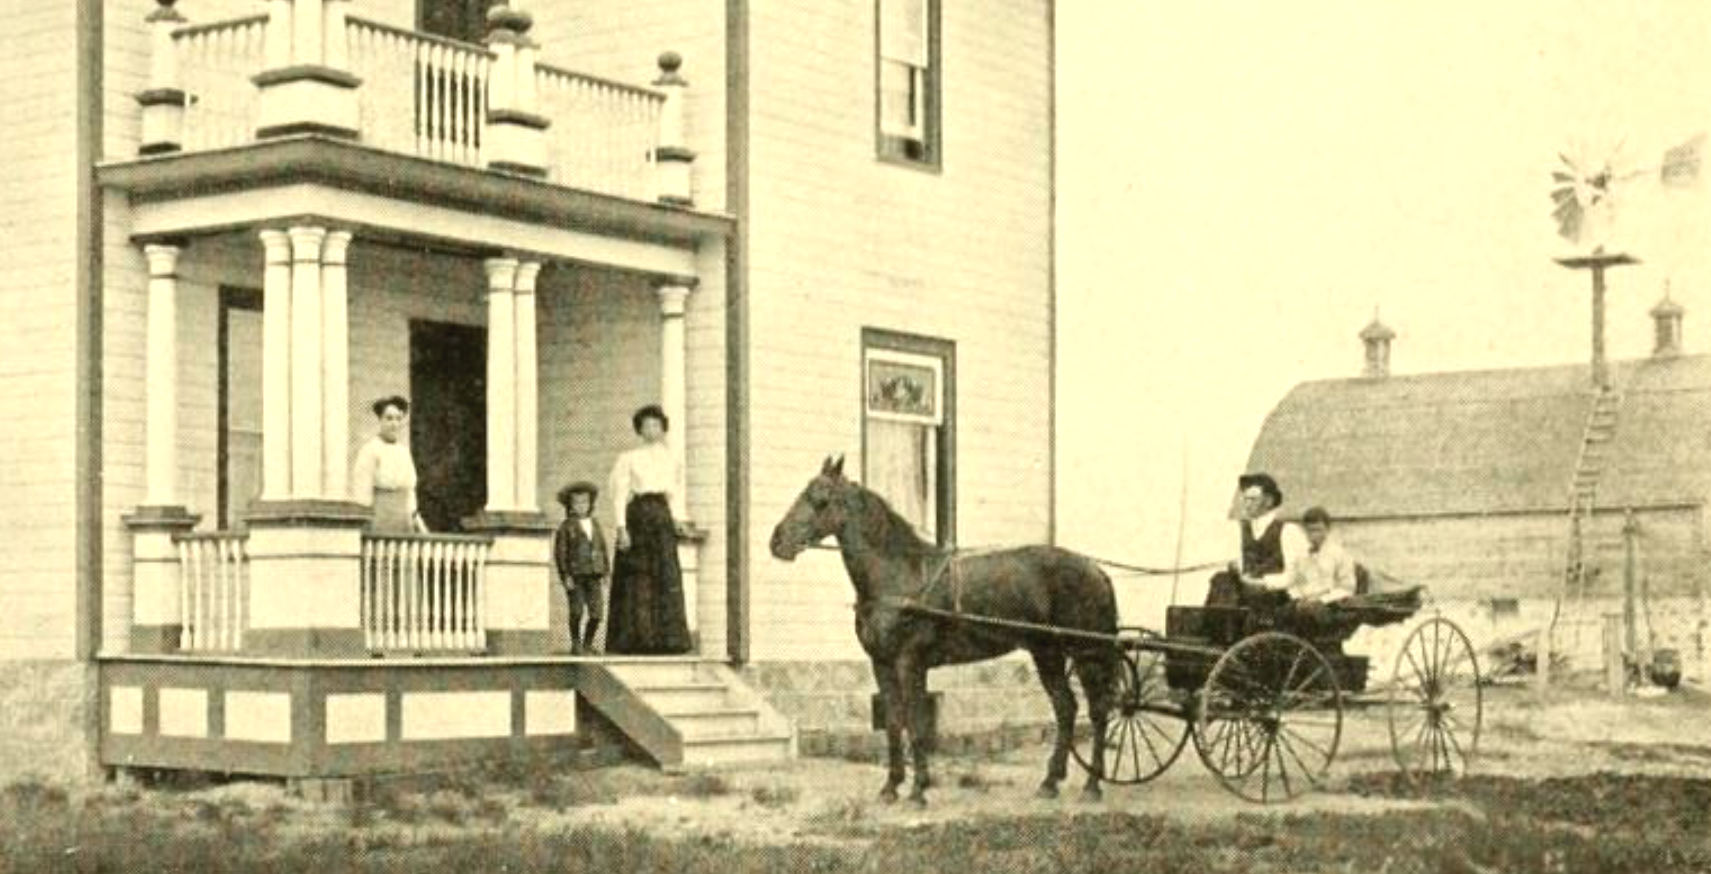 Image of prairie farm family on front porch and in buggy behind horse, barnd and windmill in background